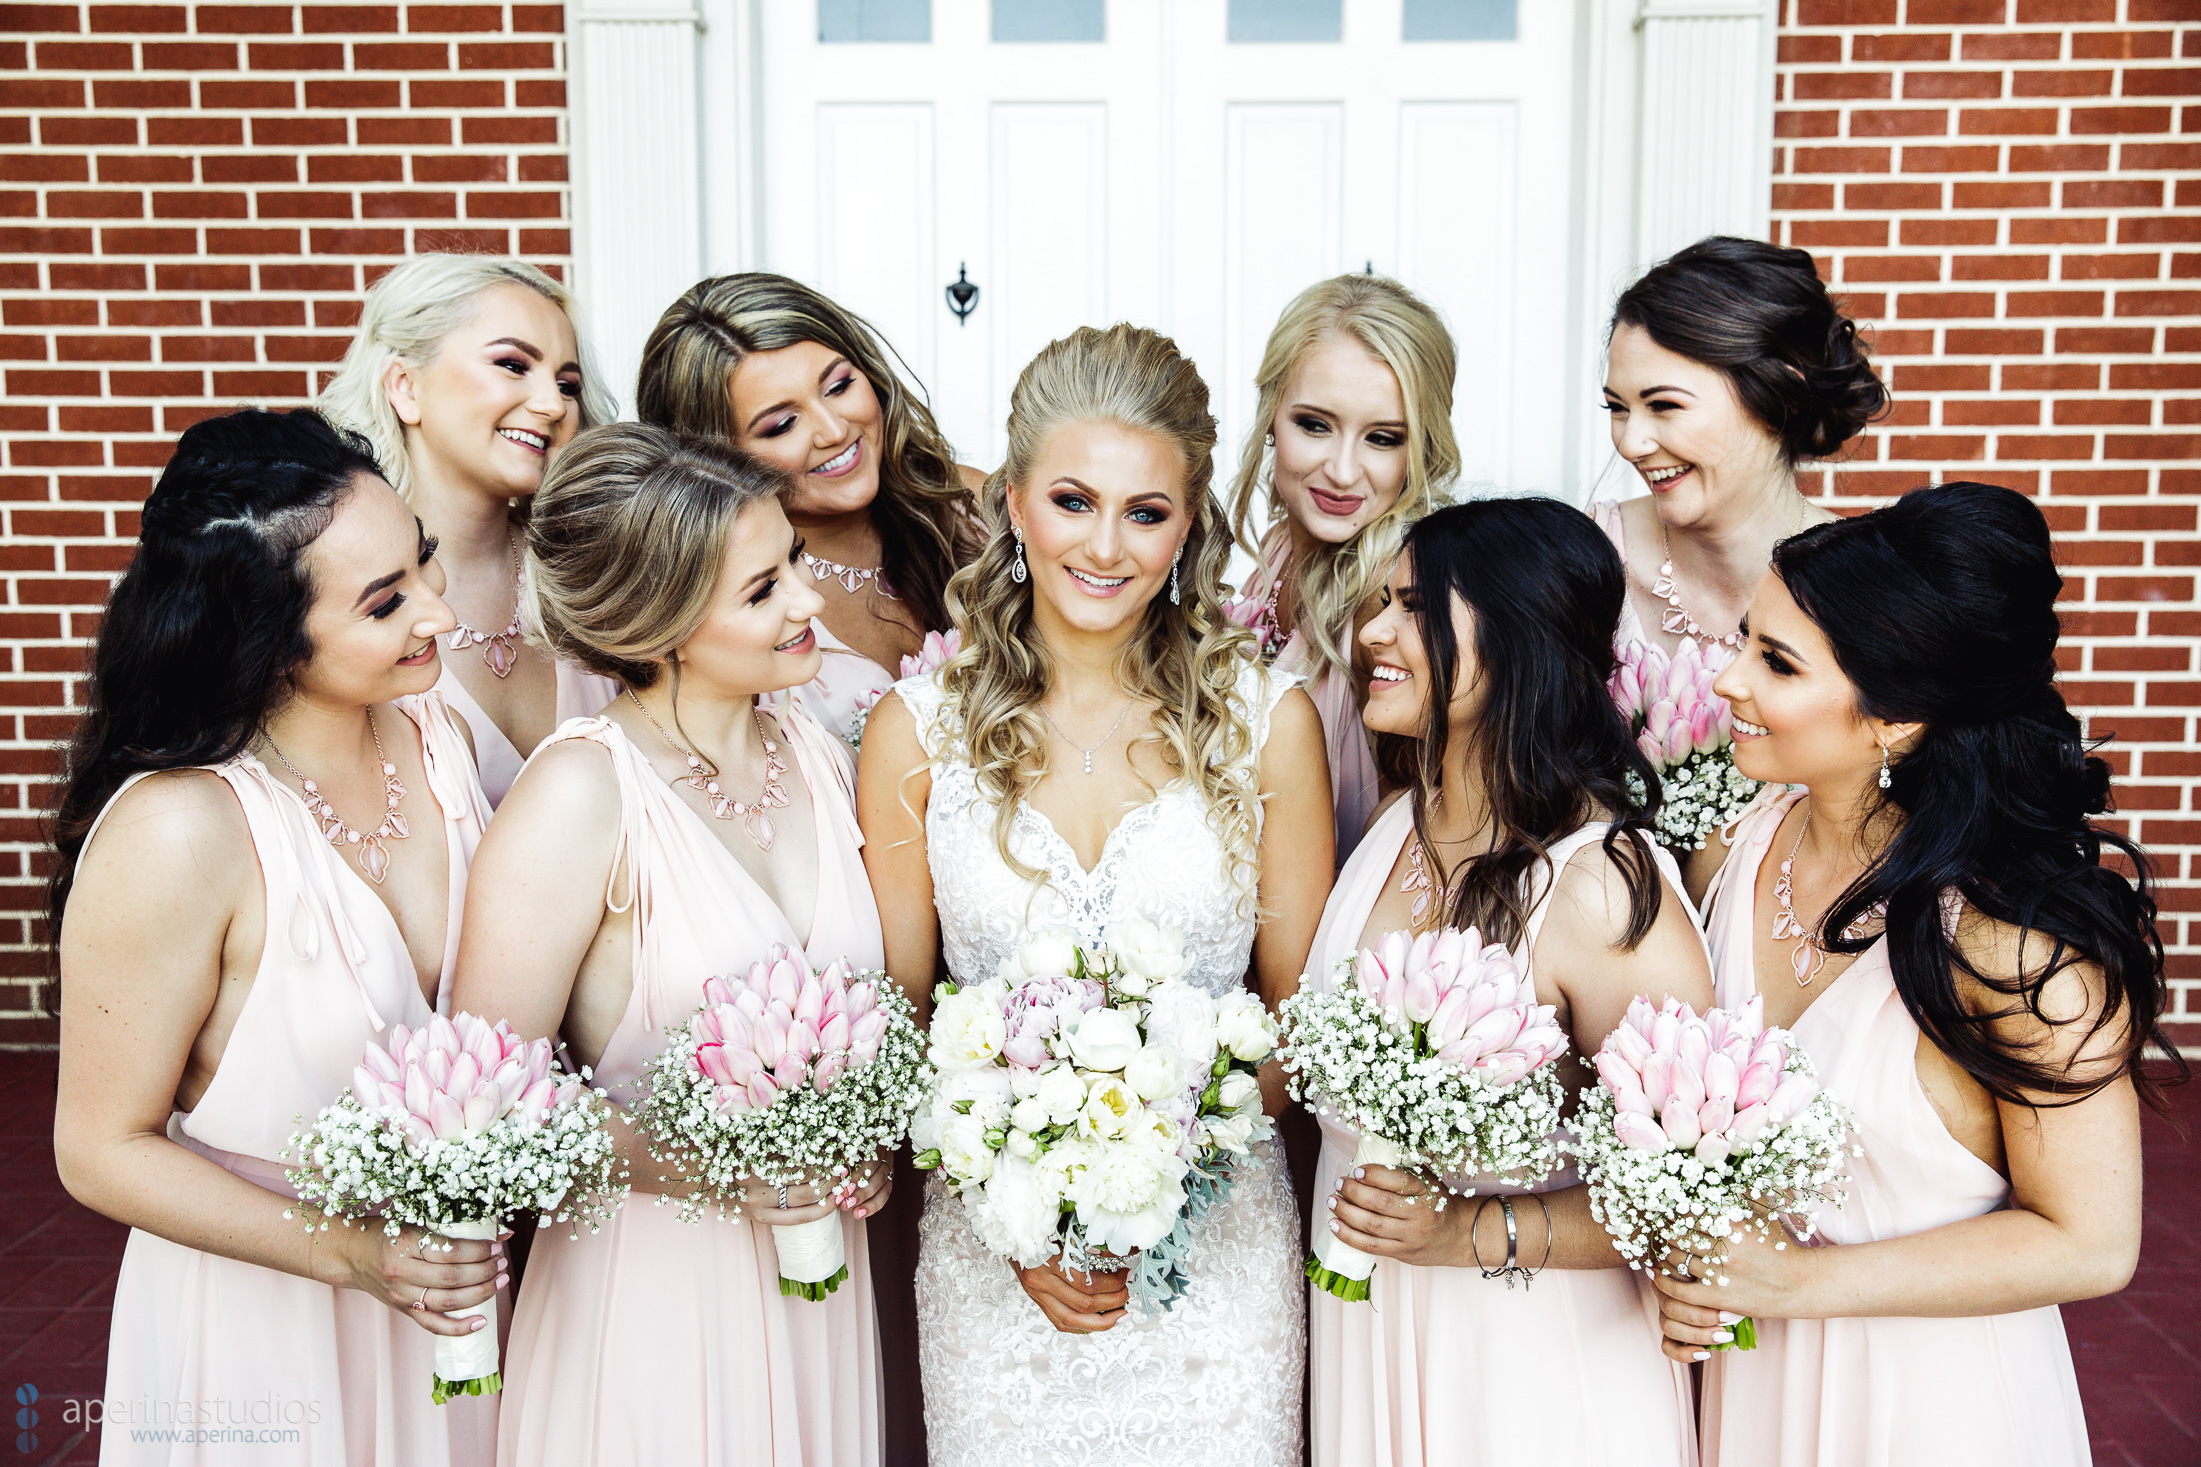 Grace Vineyards Winery Wedding Photography - bride and bridesmaids